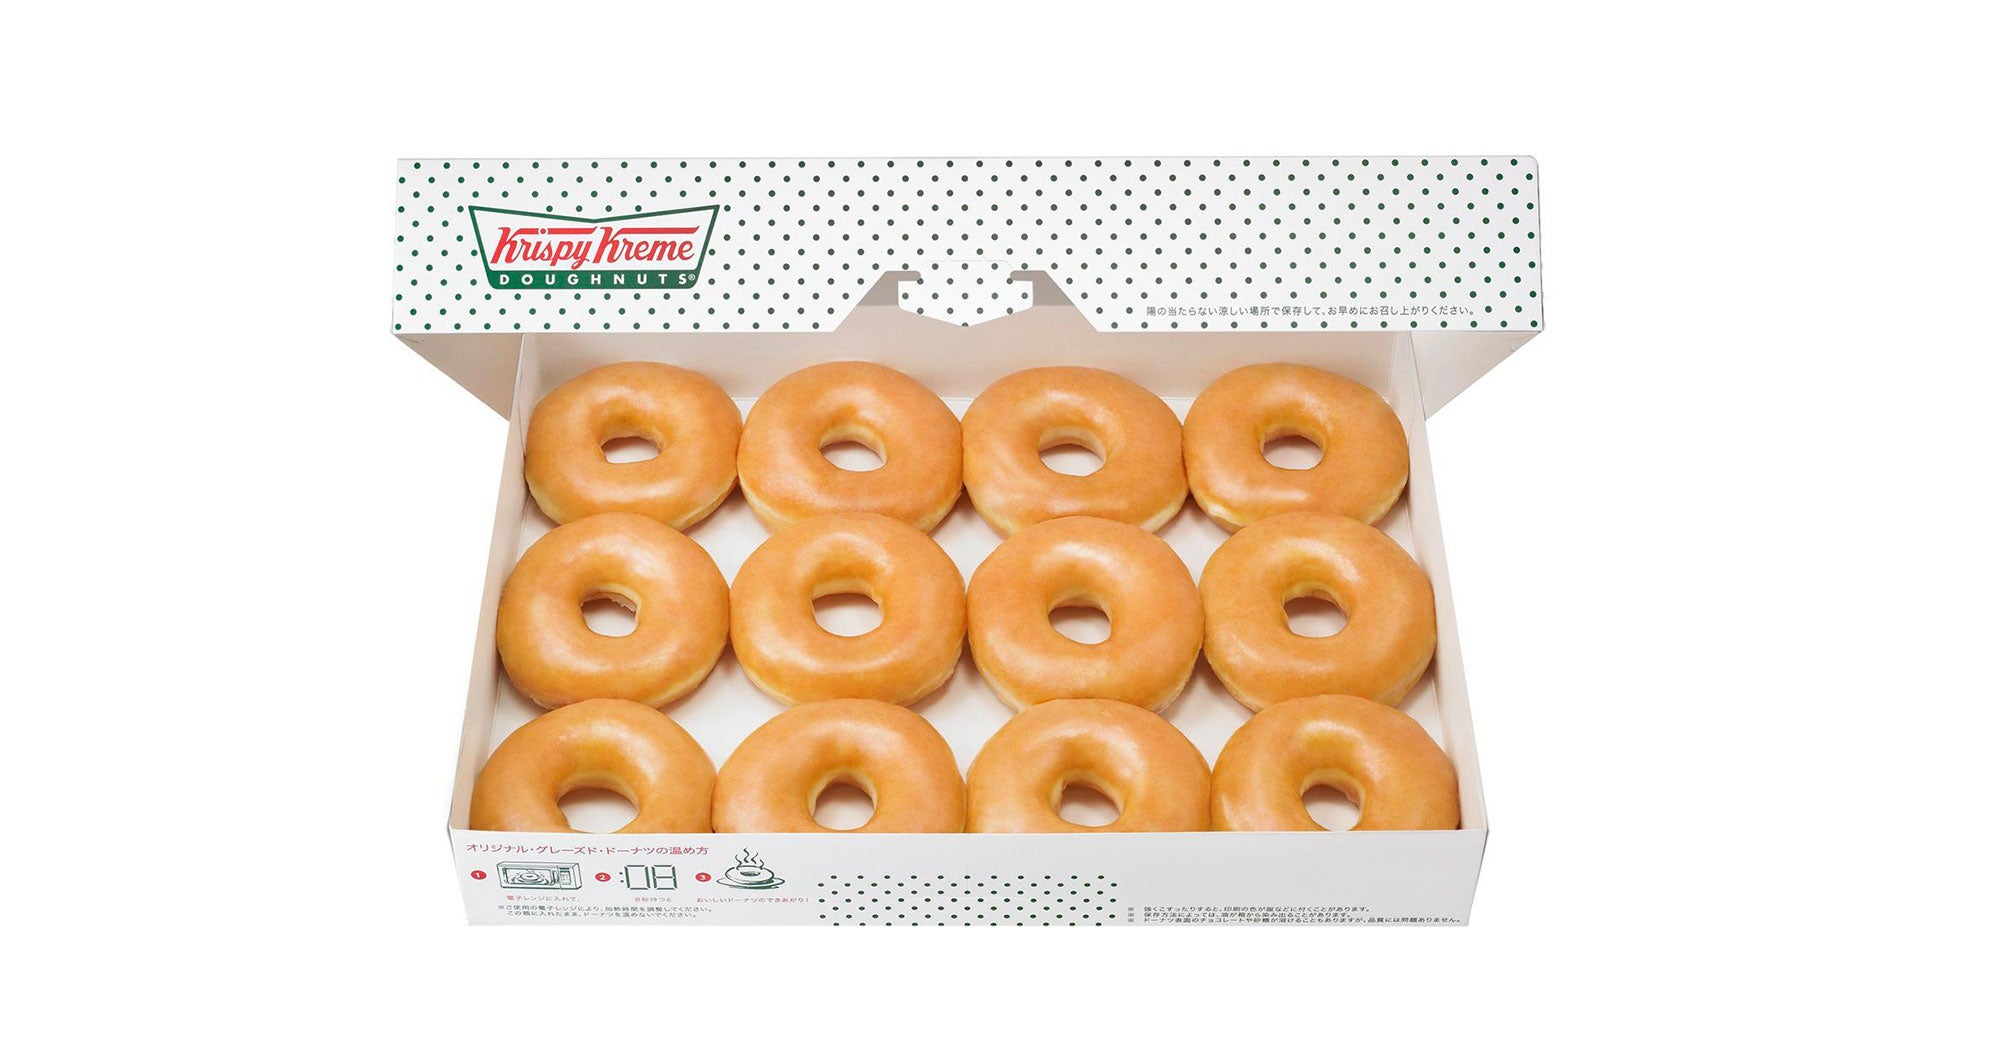 Friday The 13th Might Be Your Lucky Day Thanks To This Krispy Kreme Deal